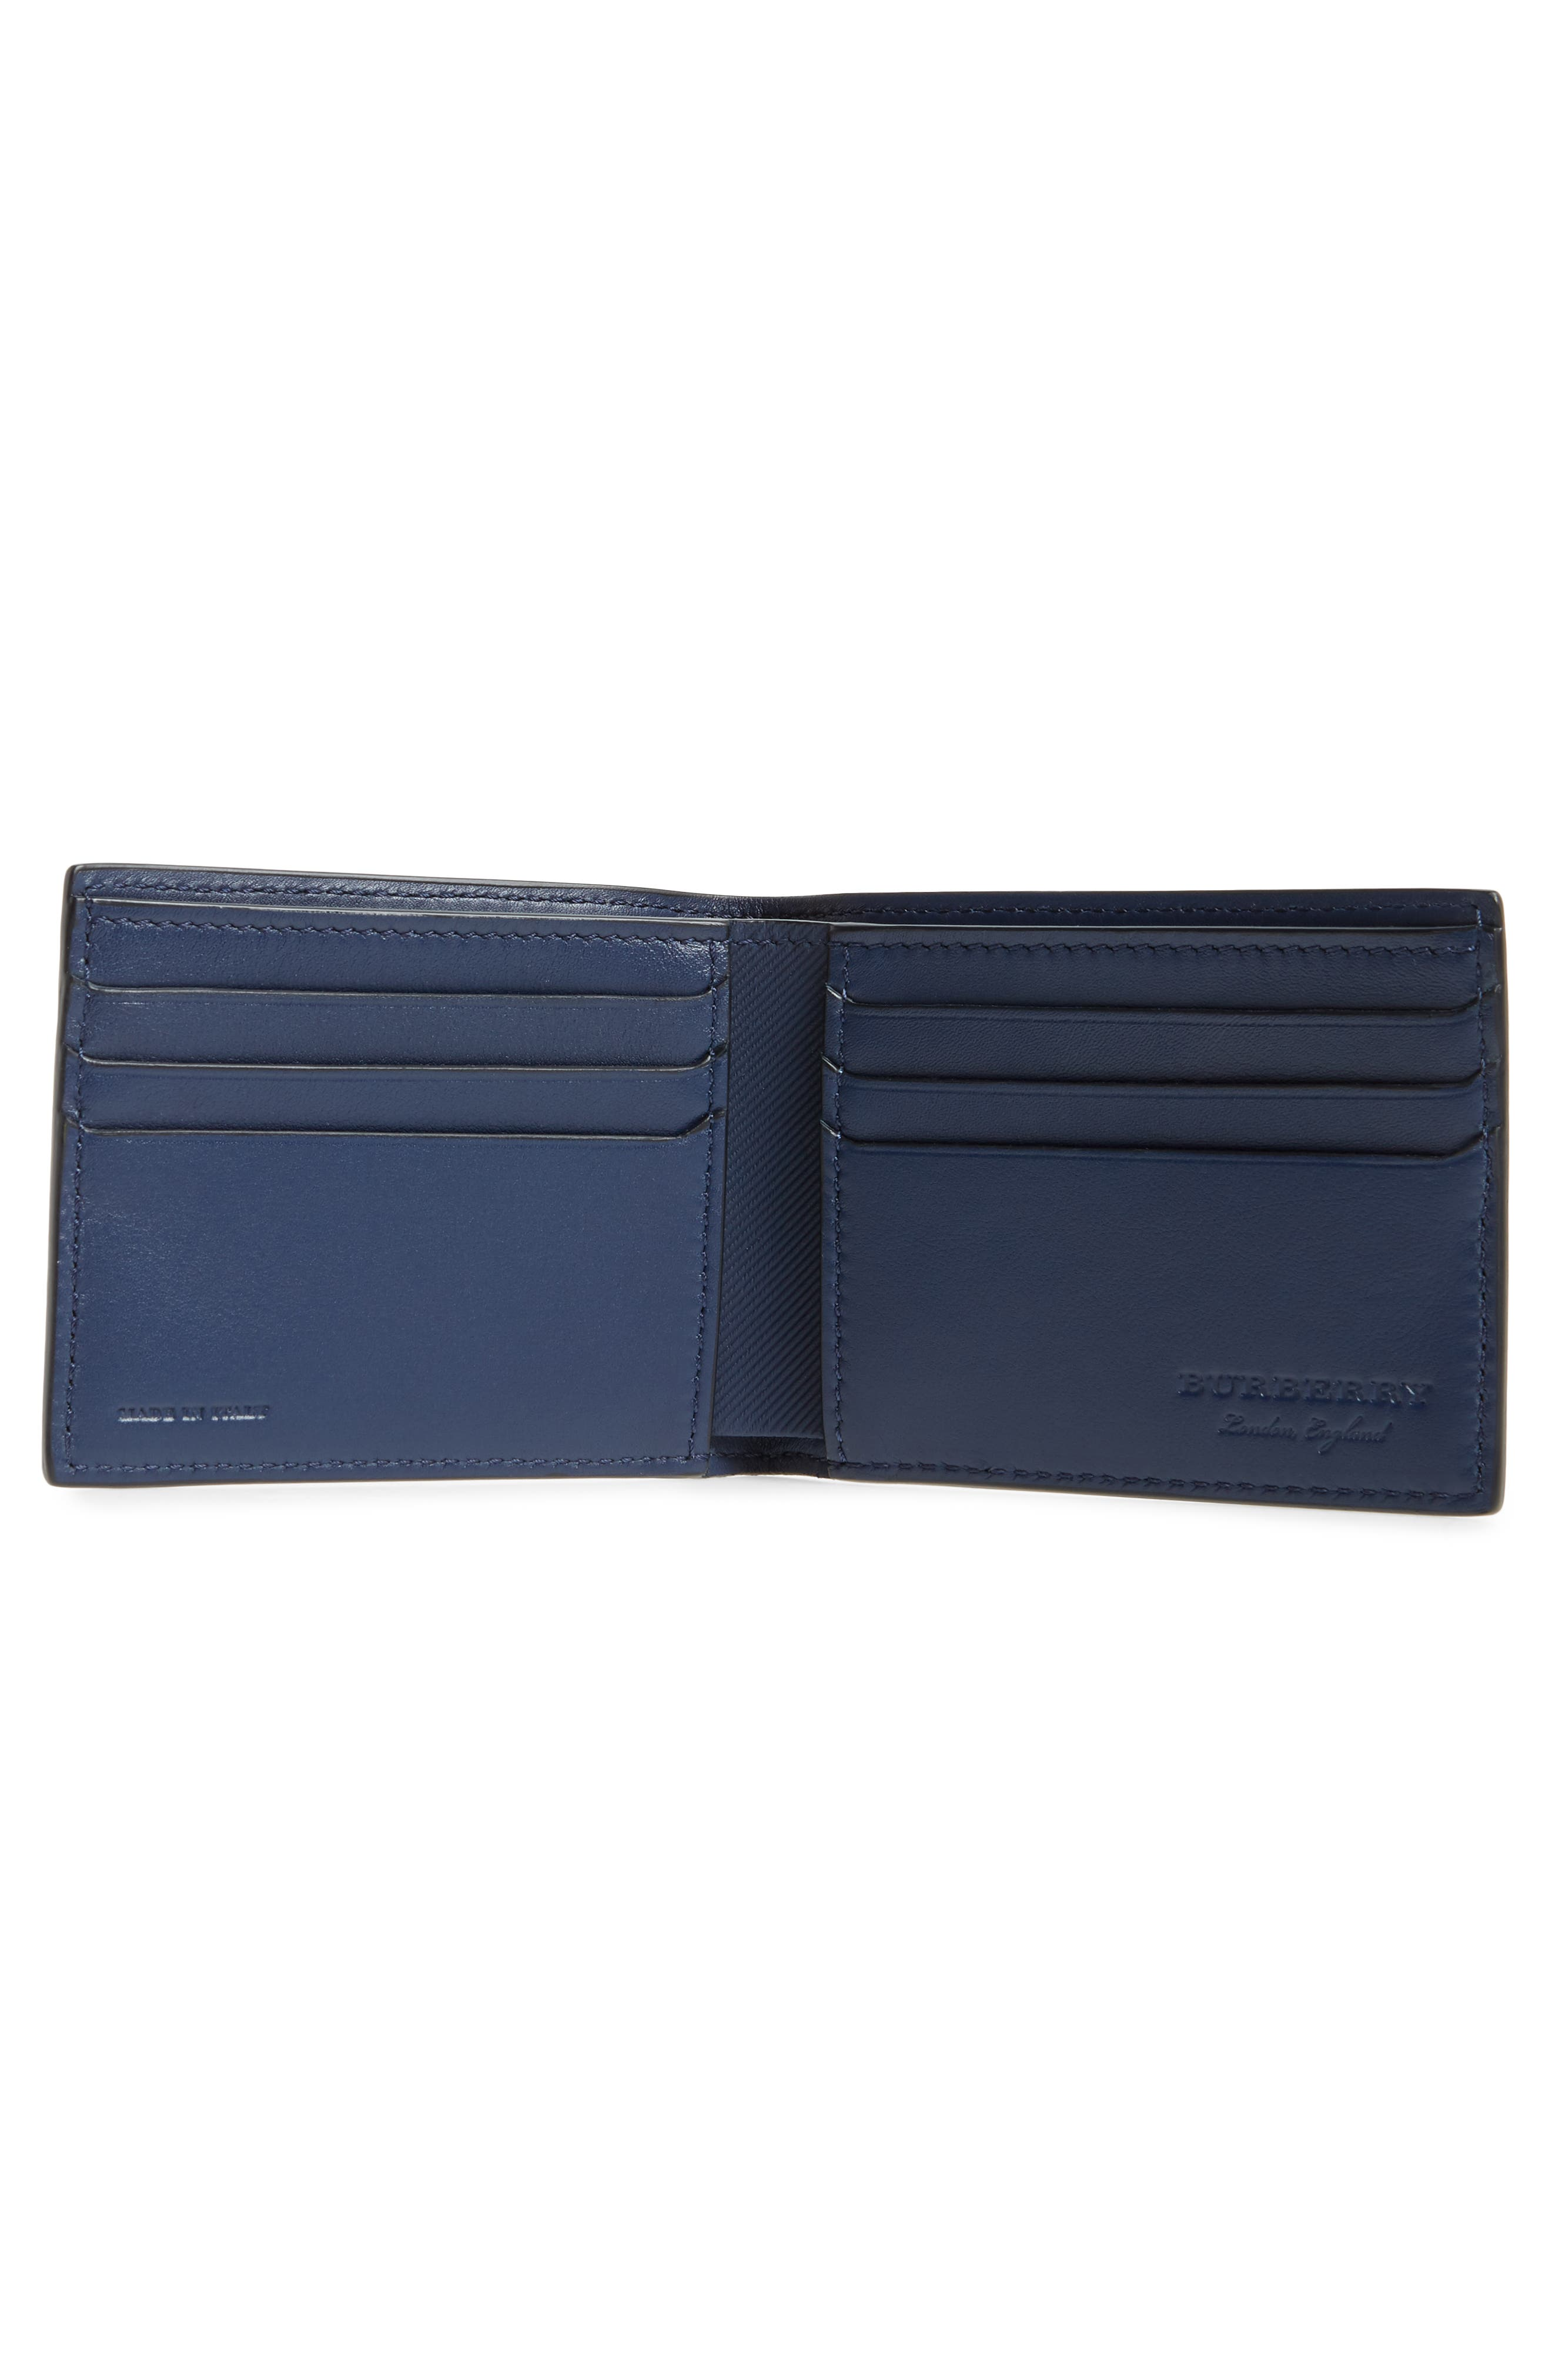 Trench Leather Wallet,                             Alternate thumbnail 2, color,